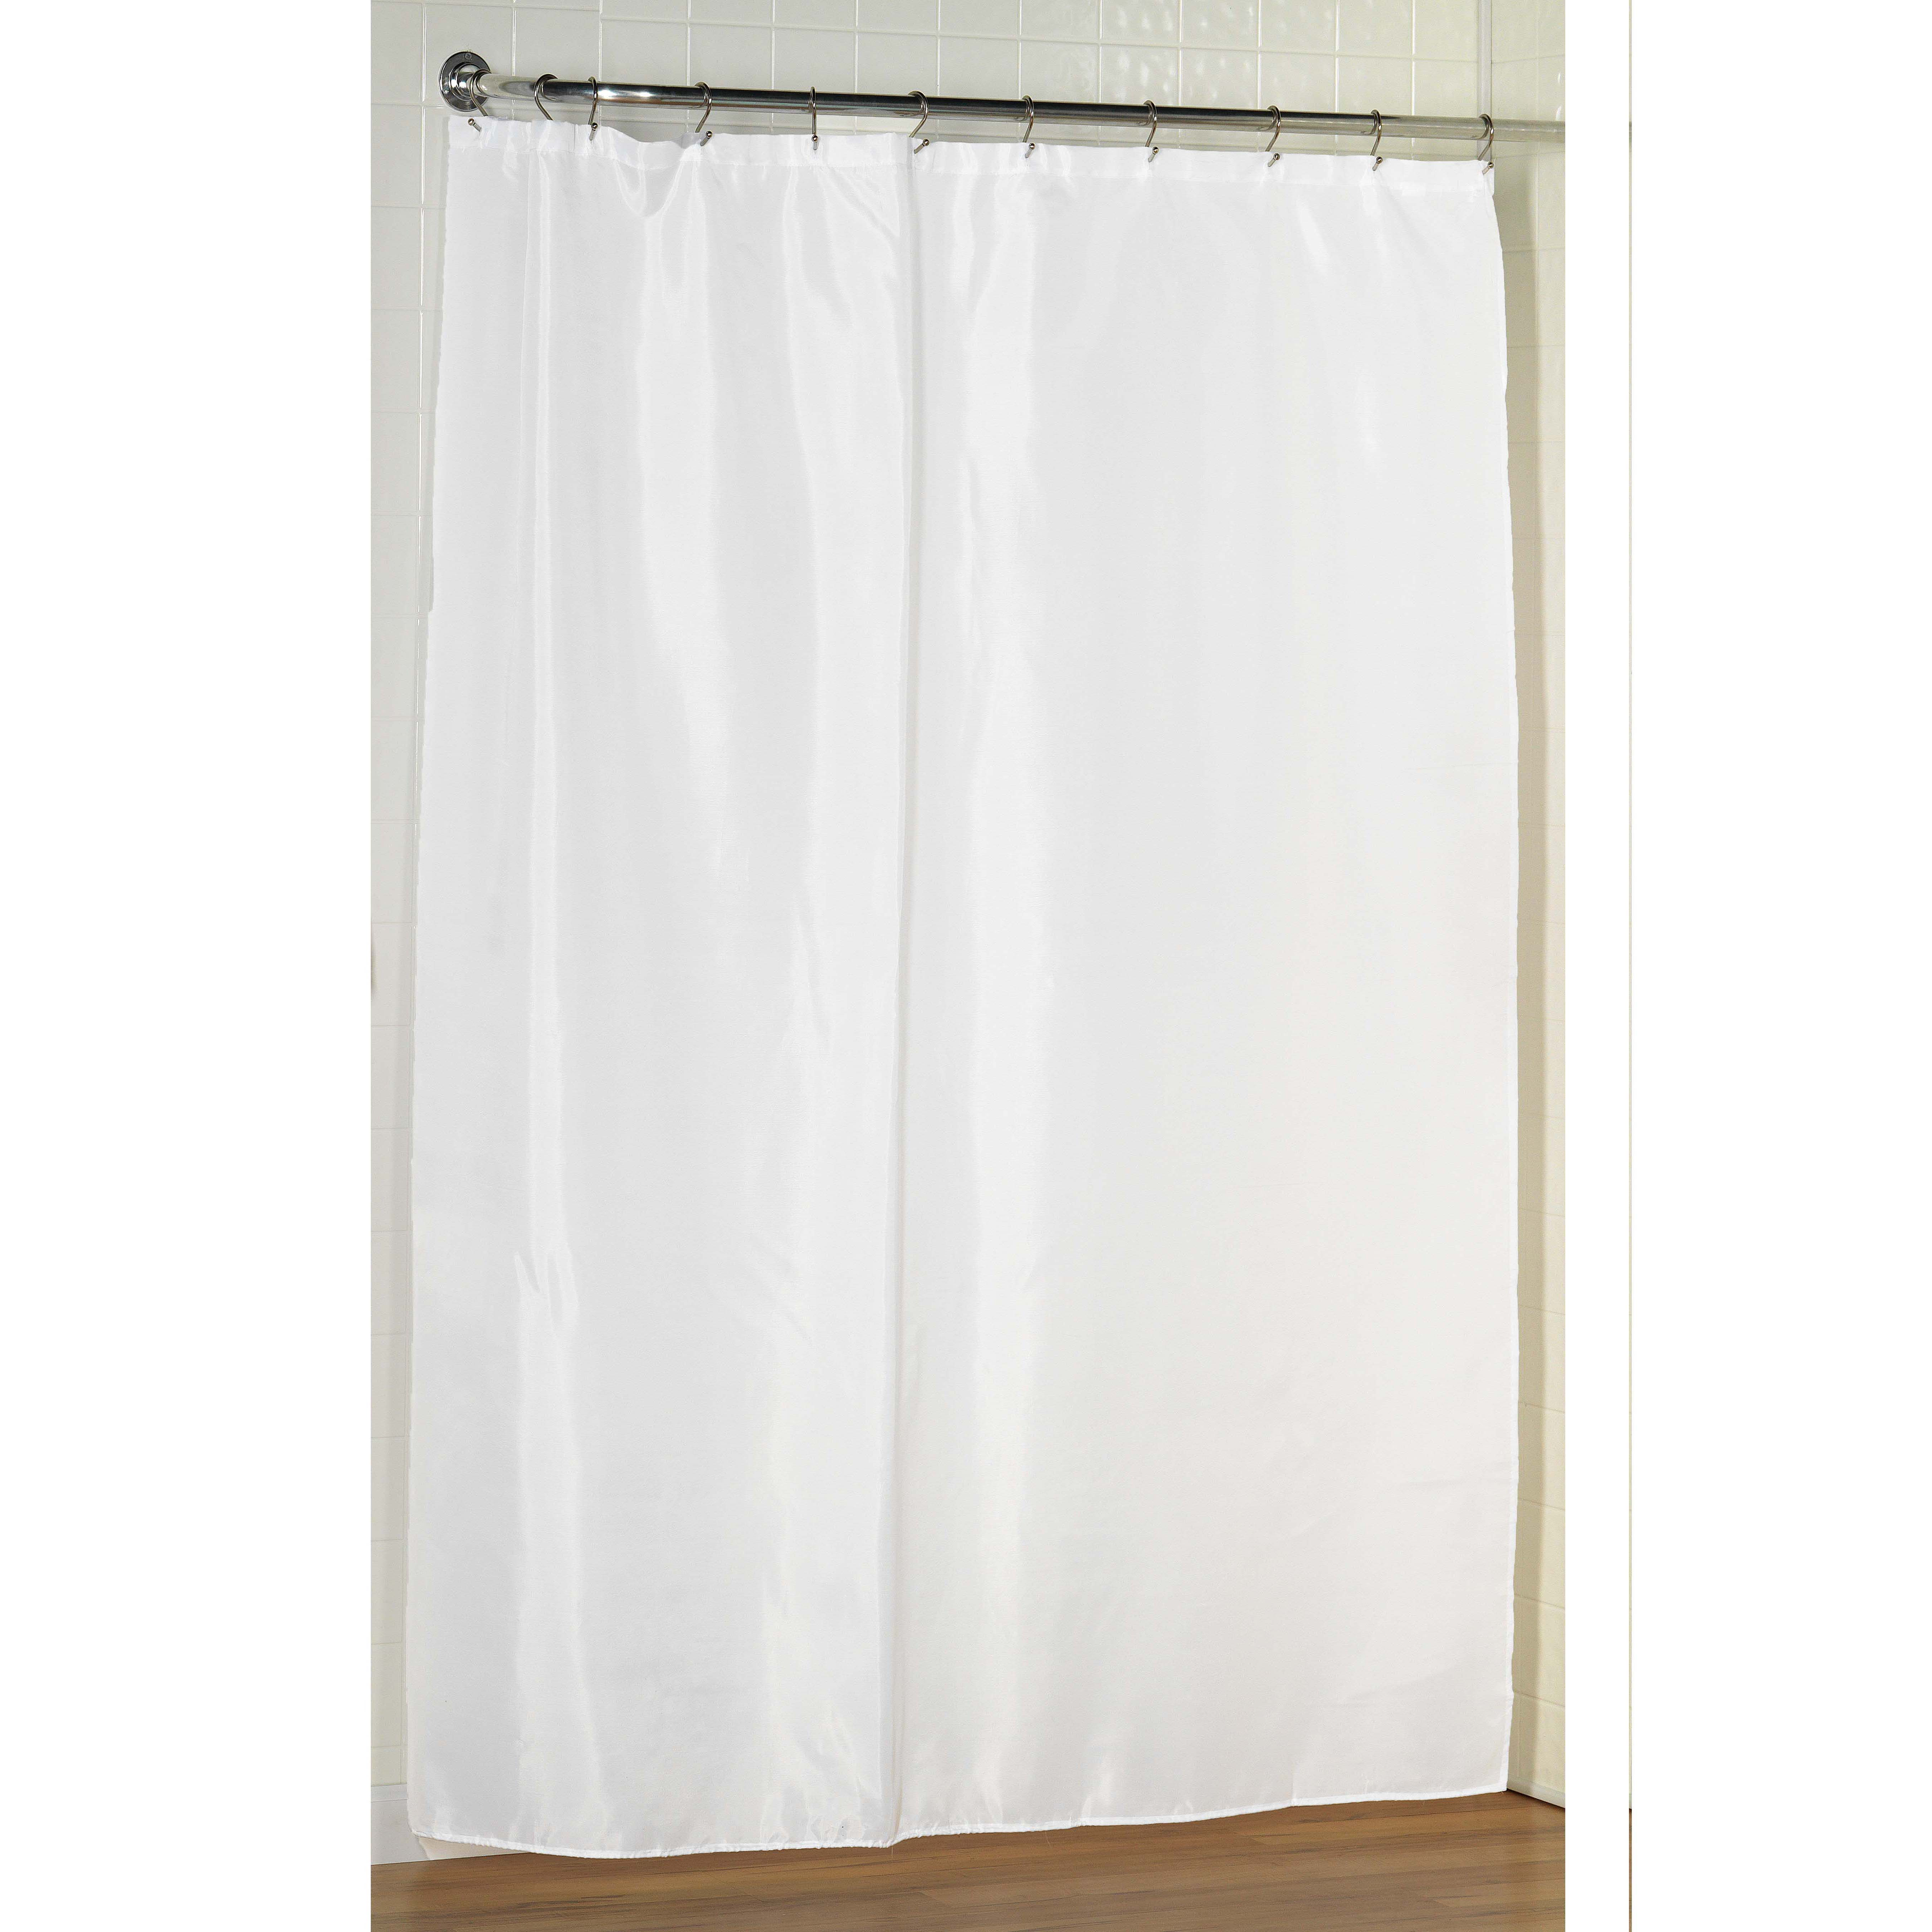 Ivory Extra Long Fabric Shower Curtain Weighted Hem Water